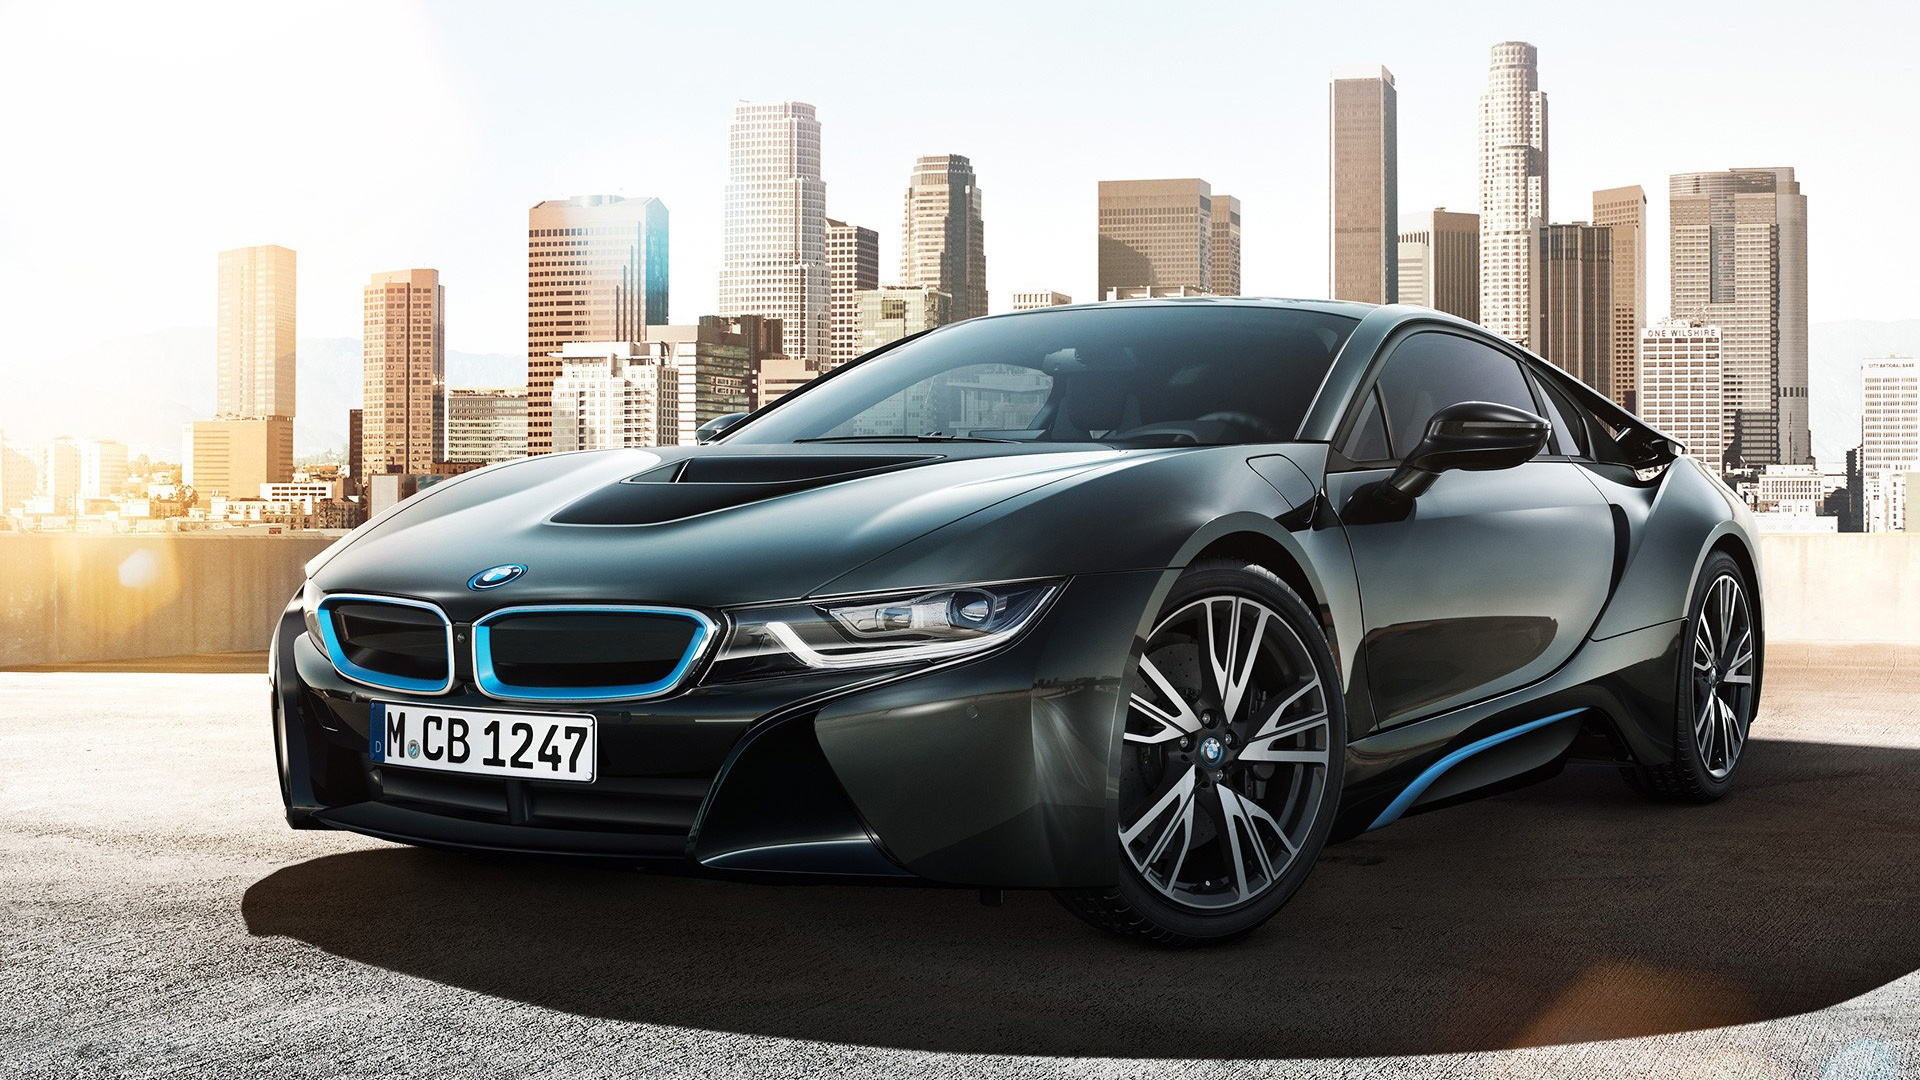 Bmw I8 Wallpaper Hd Widescreen 11 HD Wallpapers